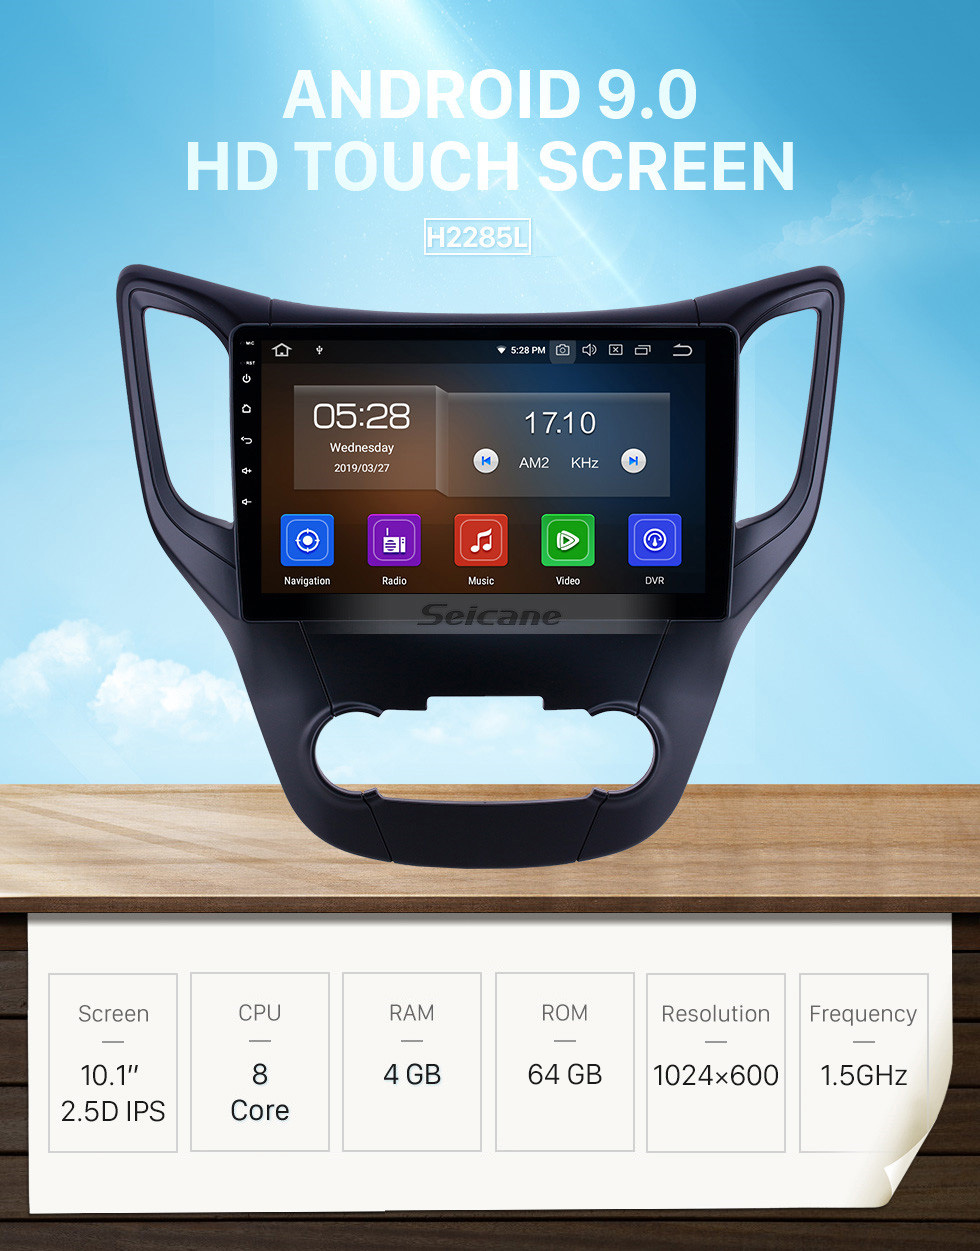 Seicane 10.1 inch Android 9.0 Radio for 2012-2016 Changan CS35 Bluetooth HD Touchscreen GPS Navigation Carplay USB support OBD2 Backup camera